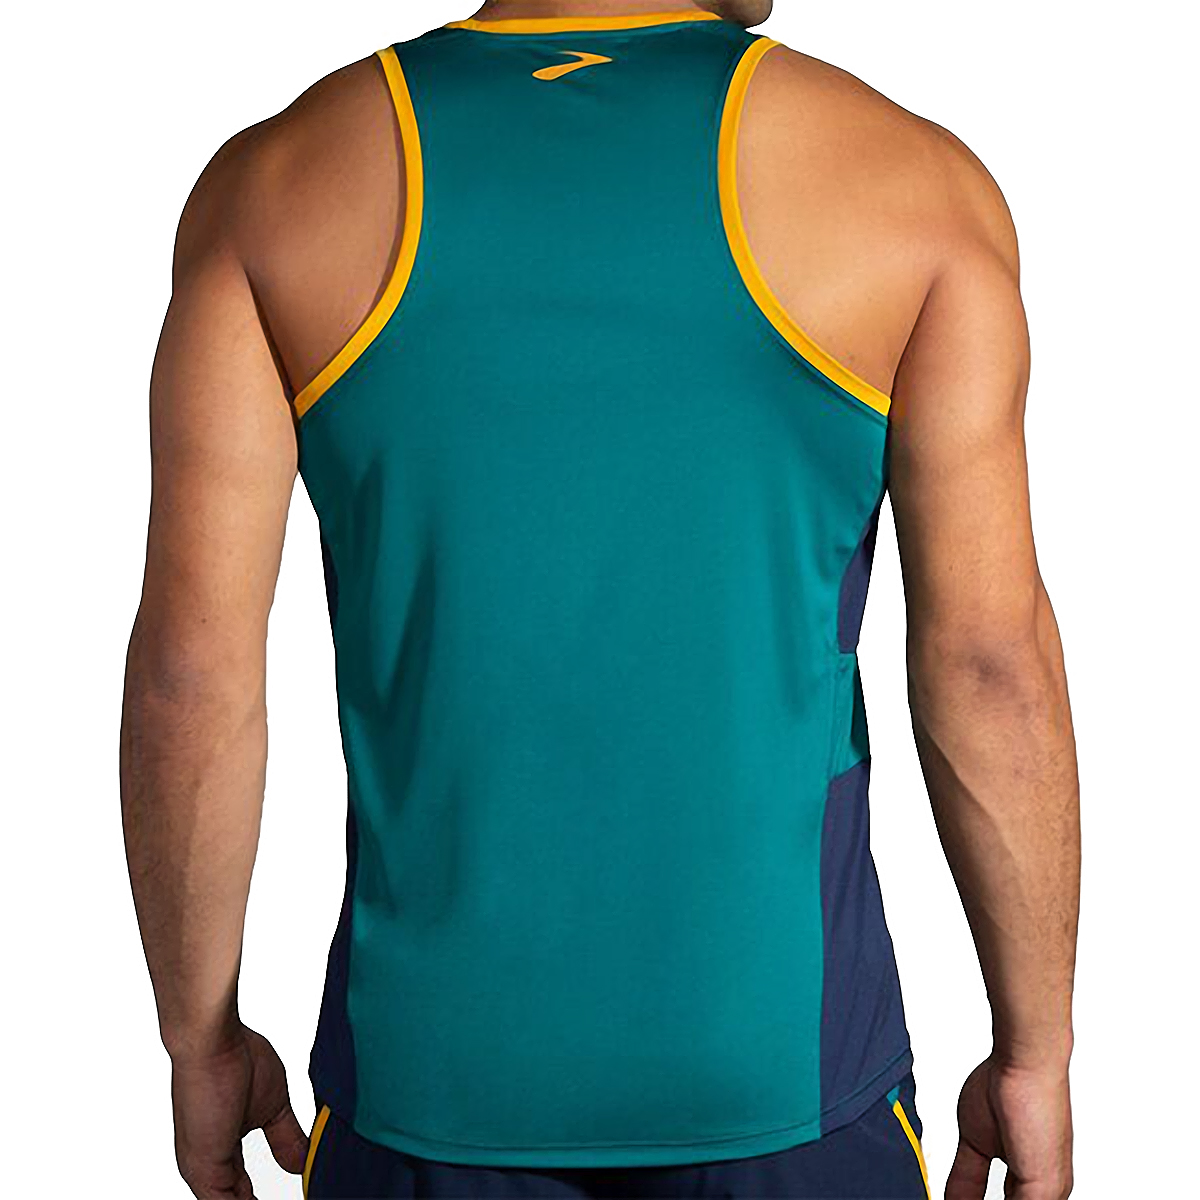 Men's Brooks Stealth Singlet  - Color: Spruce/Navy/Yellow - Size: S, Spruce/Navy/Yellow, large, image 2